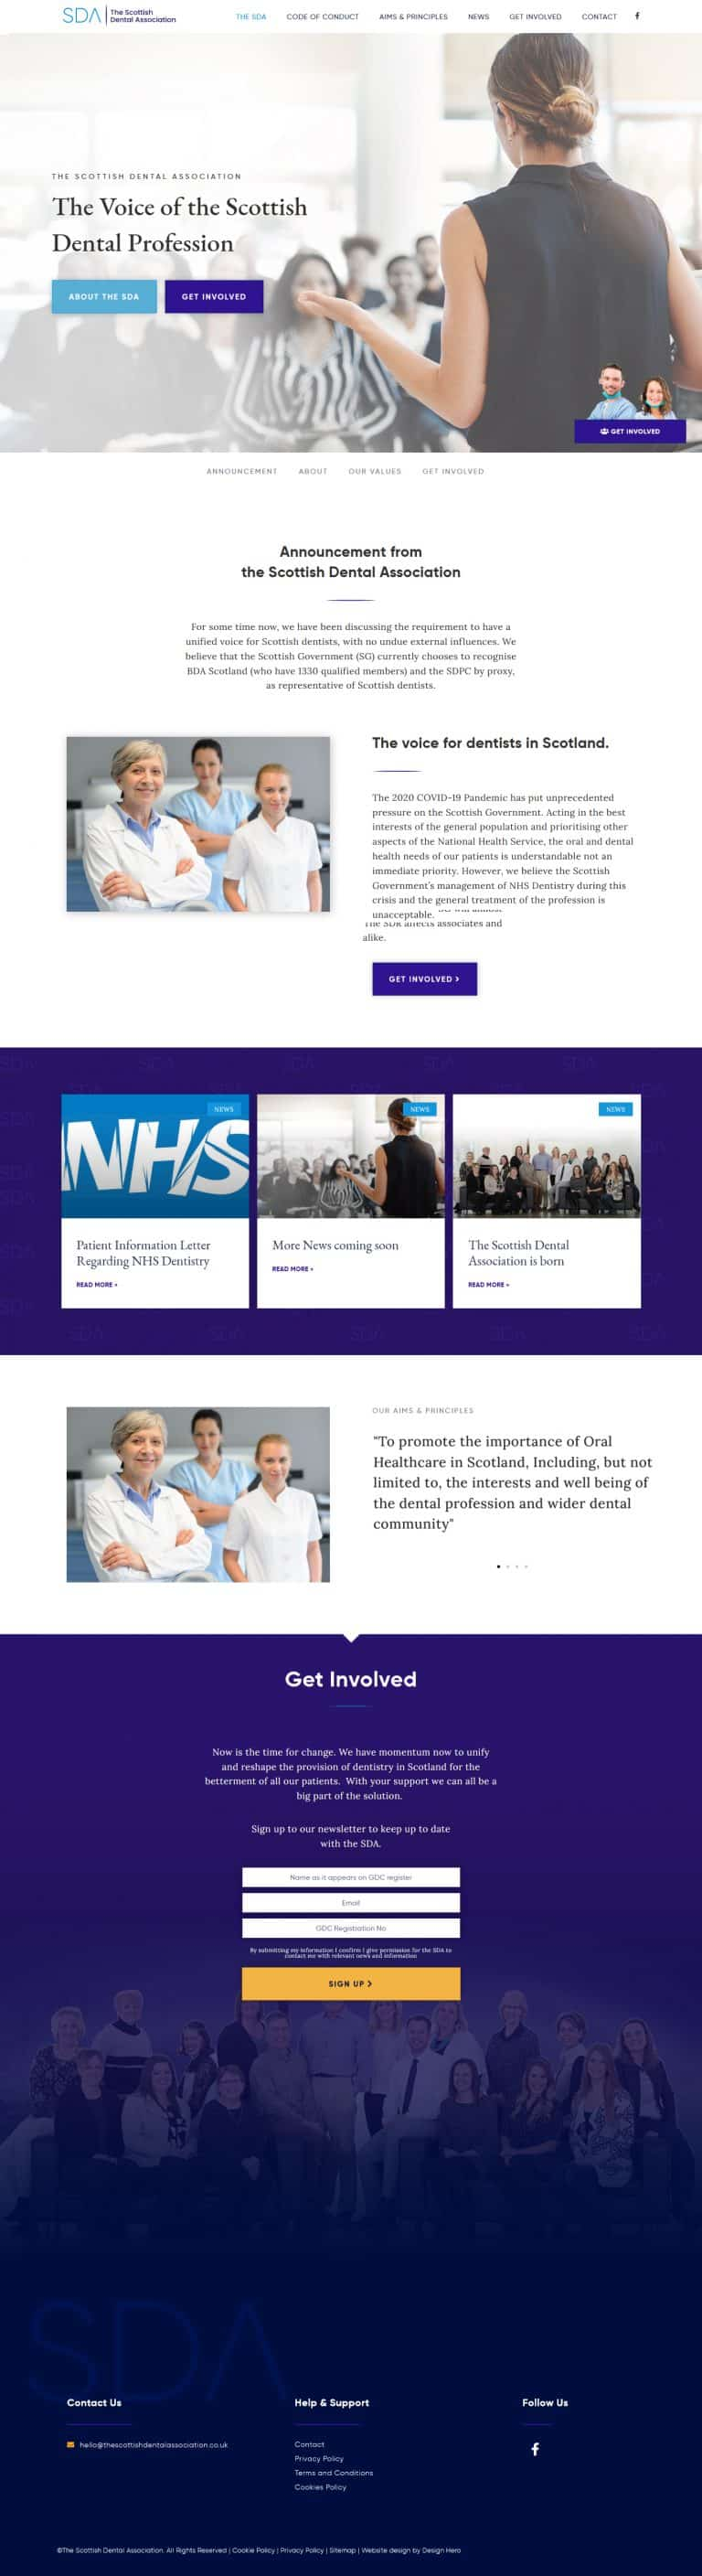 Homepage design for Scottish dental association website